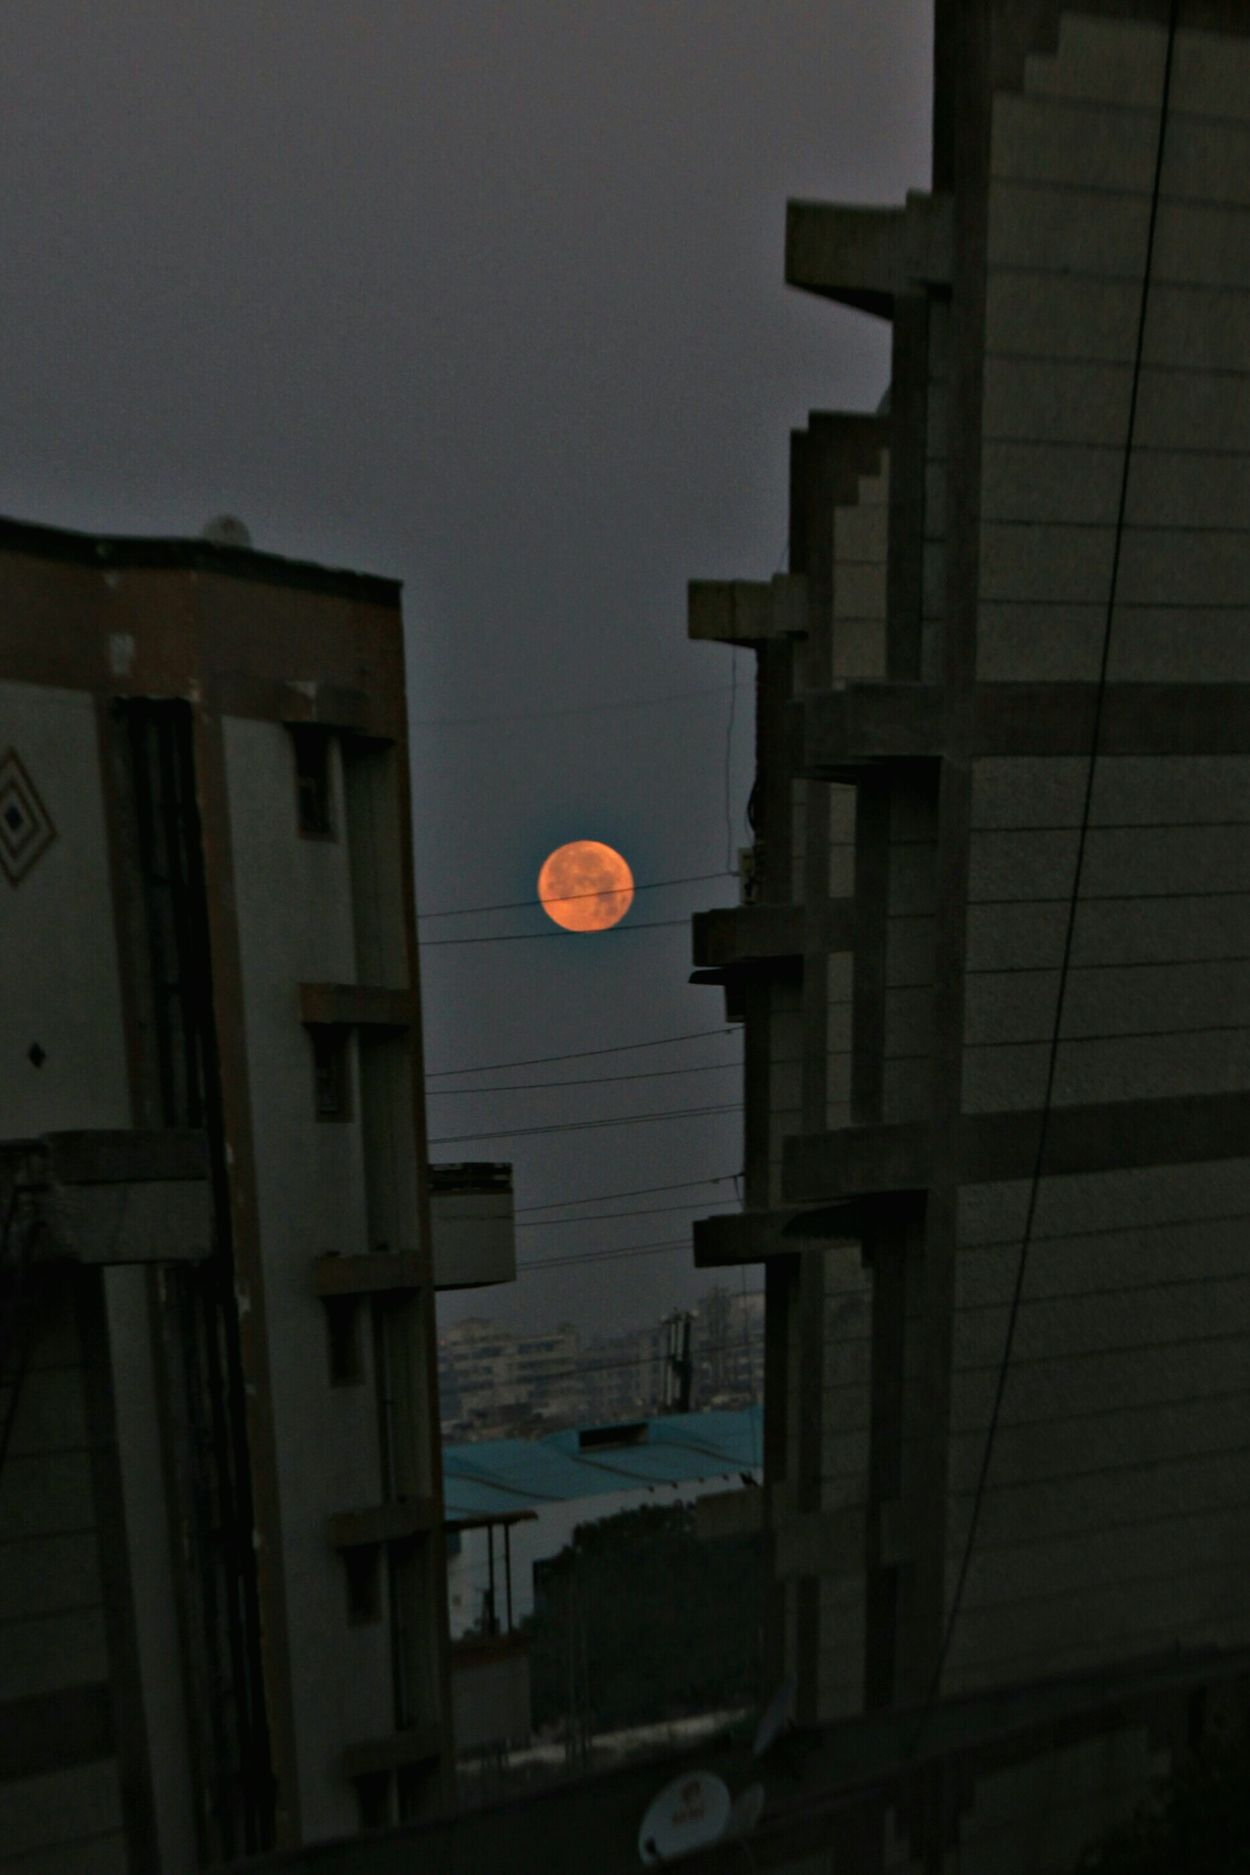 The Great Outdoors With Adobe Clicking Photos Early Morning Moon Shots Red Moon Peaceful View Check This Out Get Outdoors Balcony View Amazing Moon Amazing Mood Gorgeous View Residential Building Between Buildings Urban Lifestyle Urban Exploration Modern Architecture The Great Outdoors - 2016 EyeEm Awards The Great Outdoor With Adobe Beautiful View Found On The Roll Cities At Night Nature's Diversities 43 Golden Moments